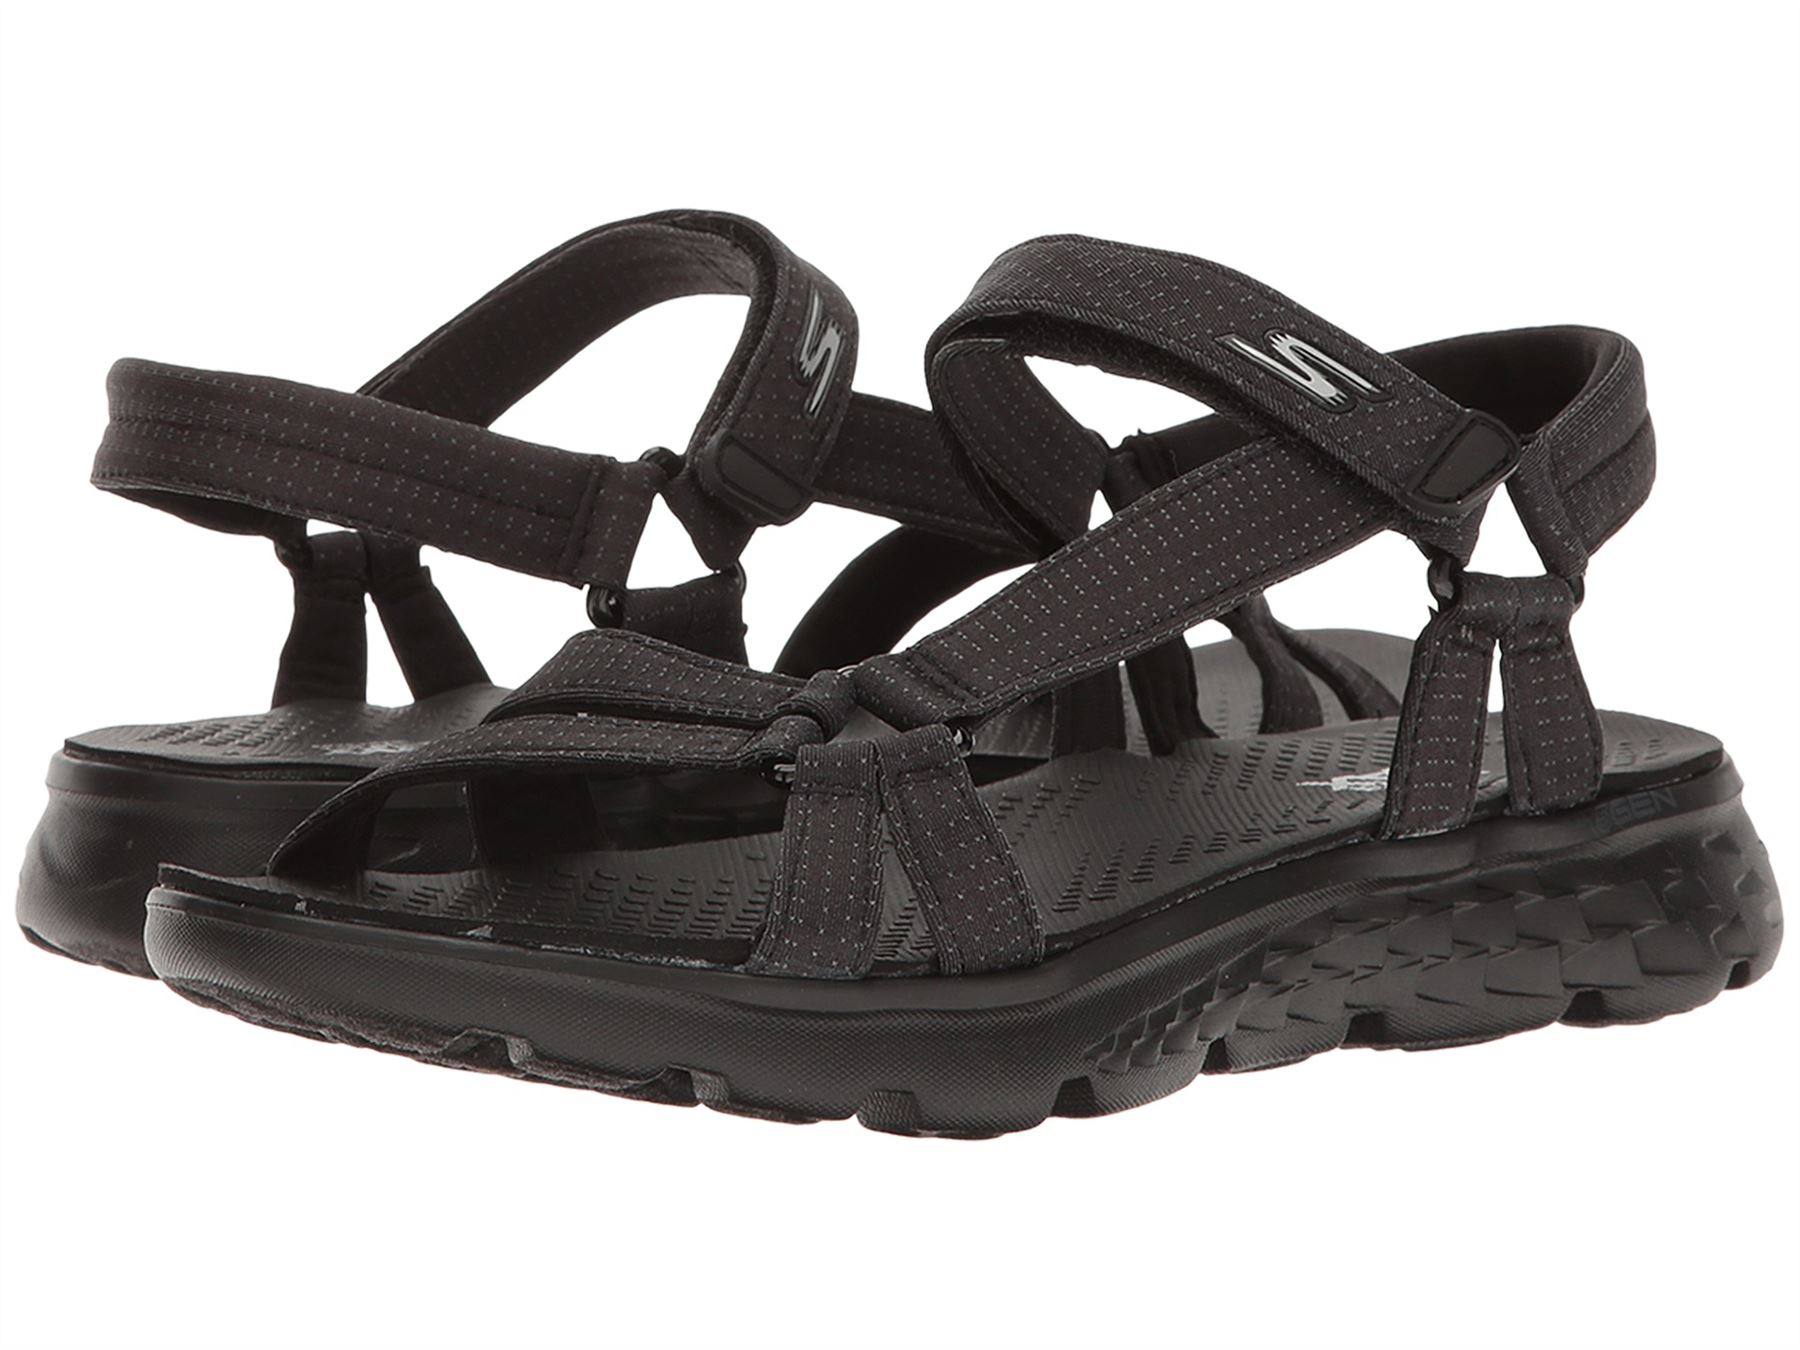 skechers performance women 39 s on the go 400 radiance sandals. Black Bedroom Furniture Sets. Home Design Ideas